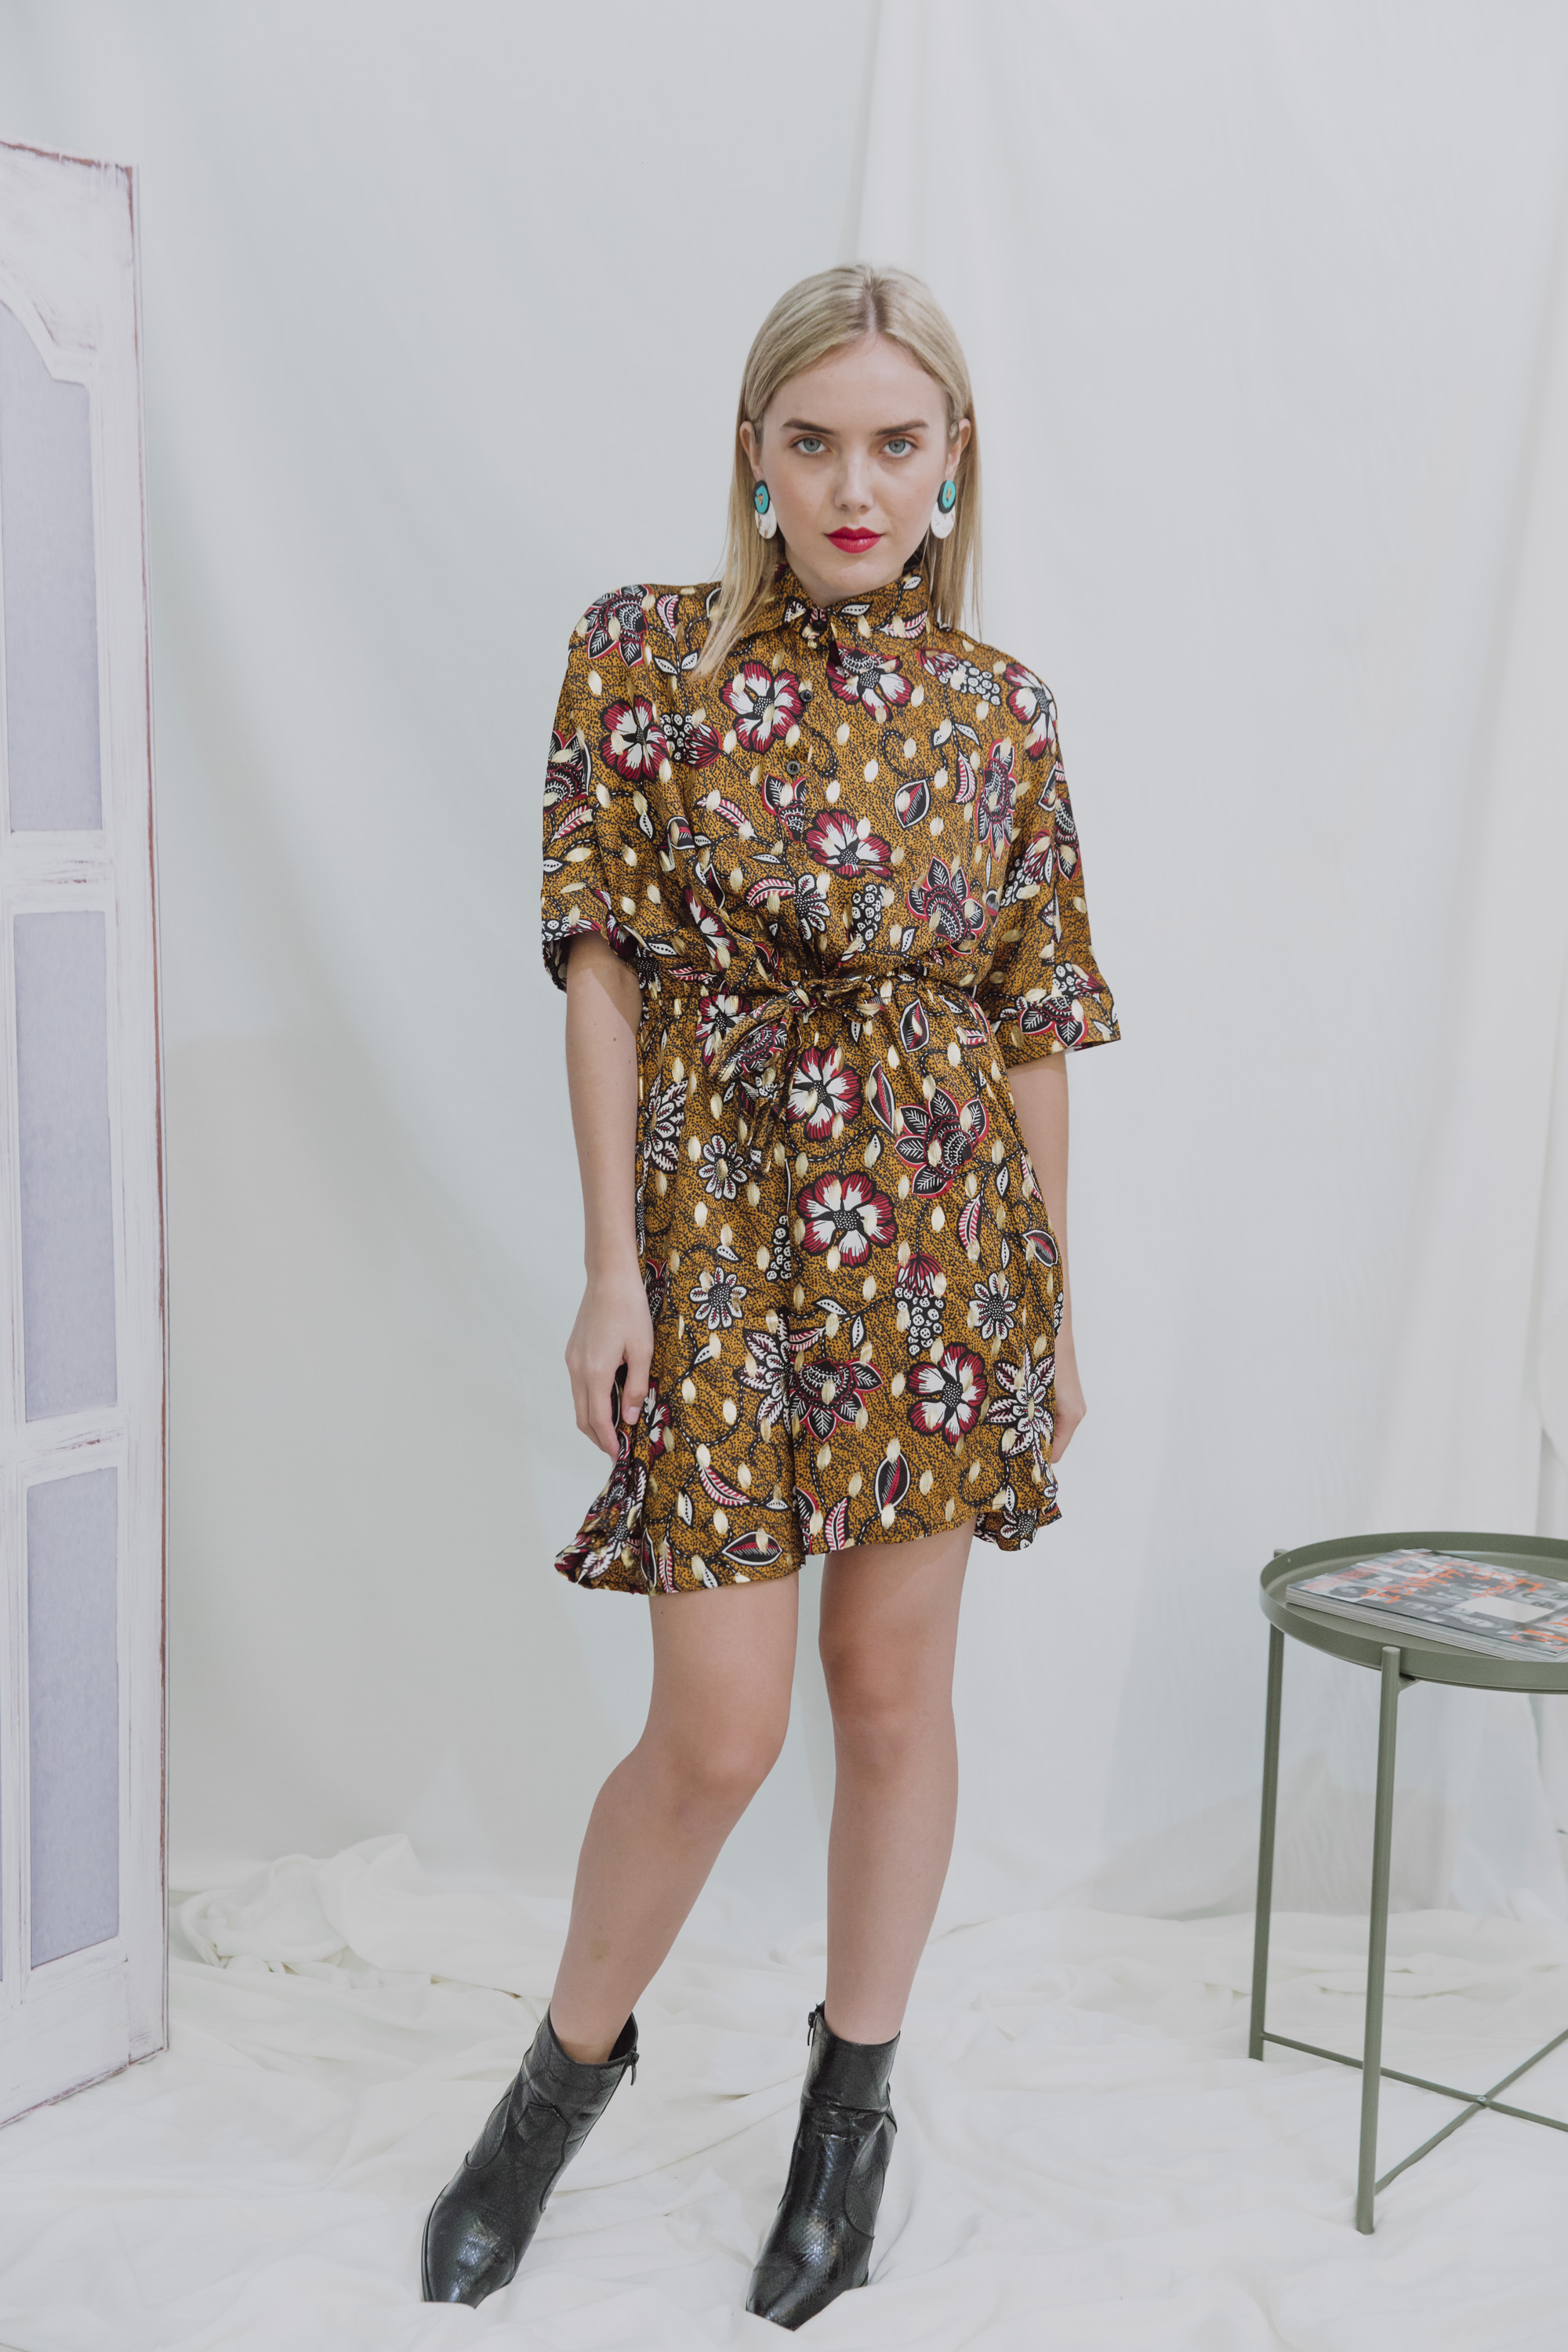 Lovae Camel Dress